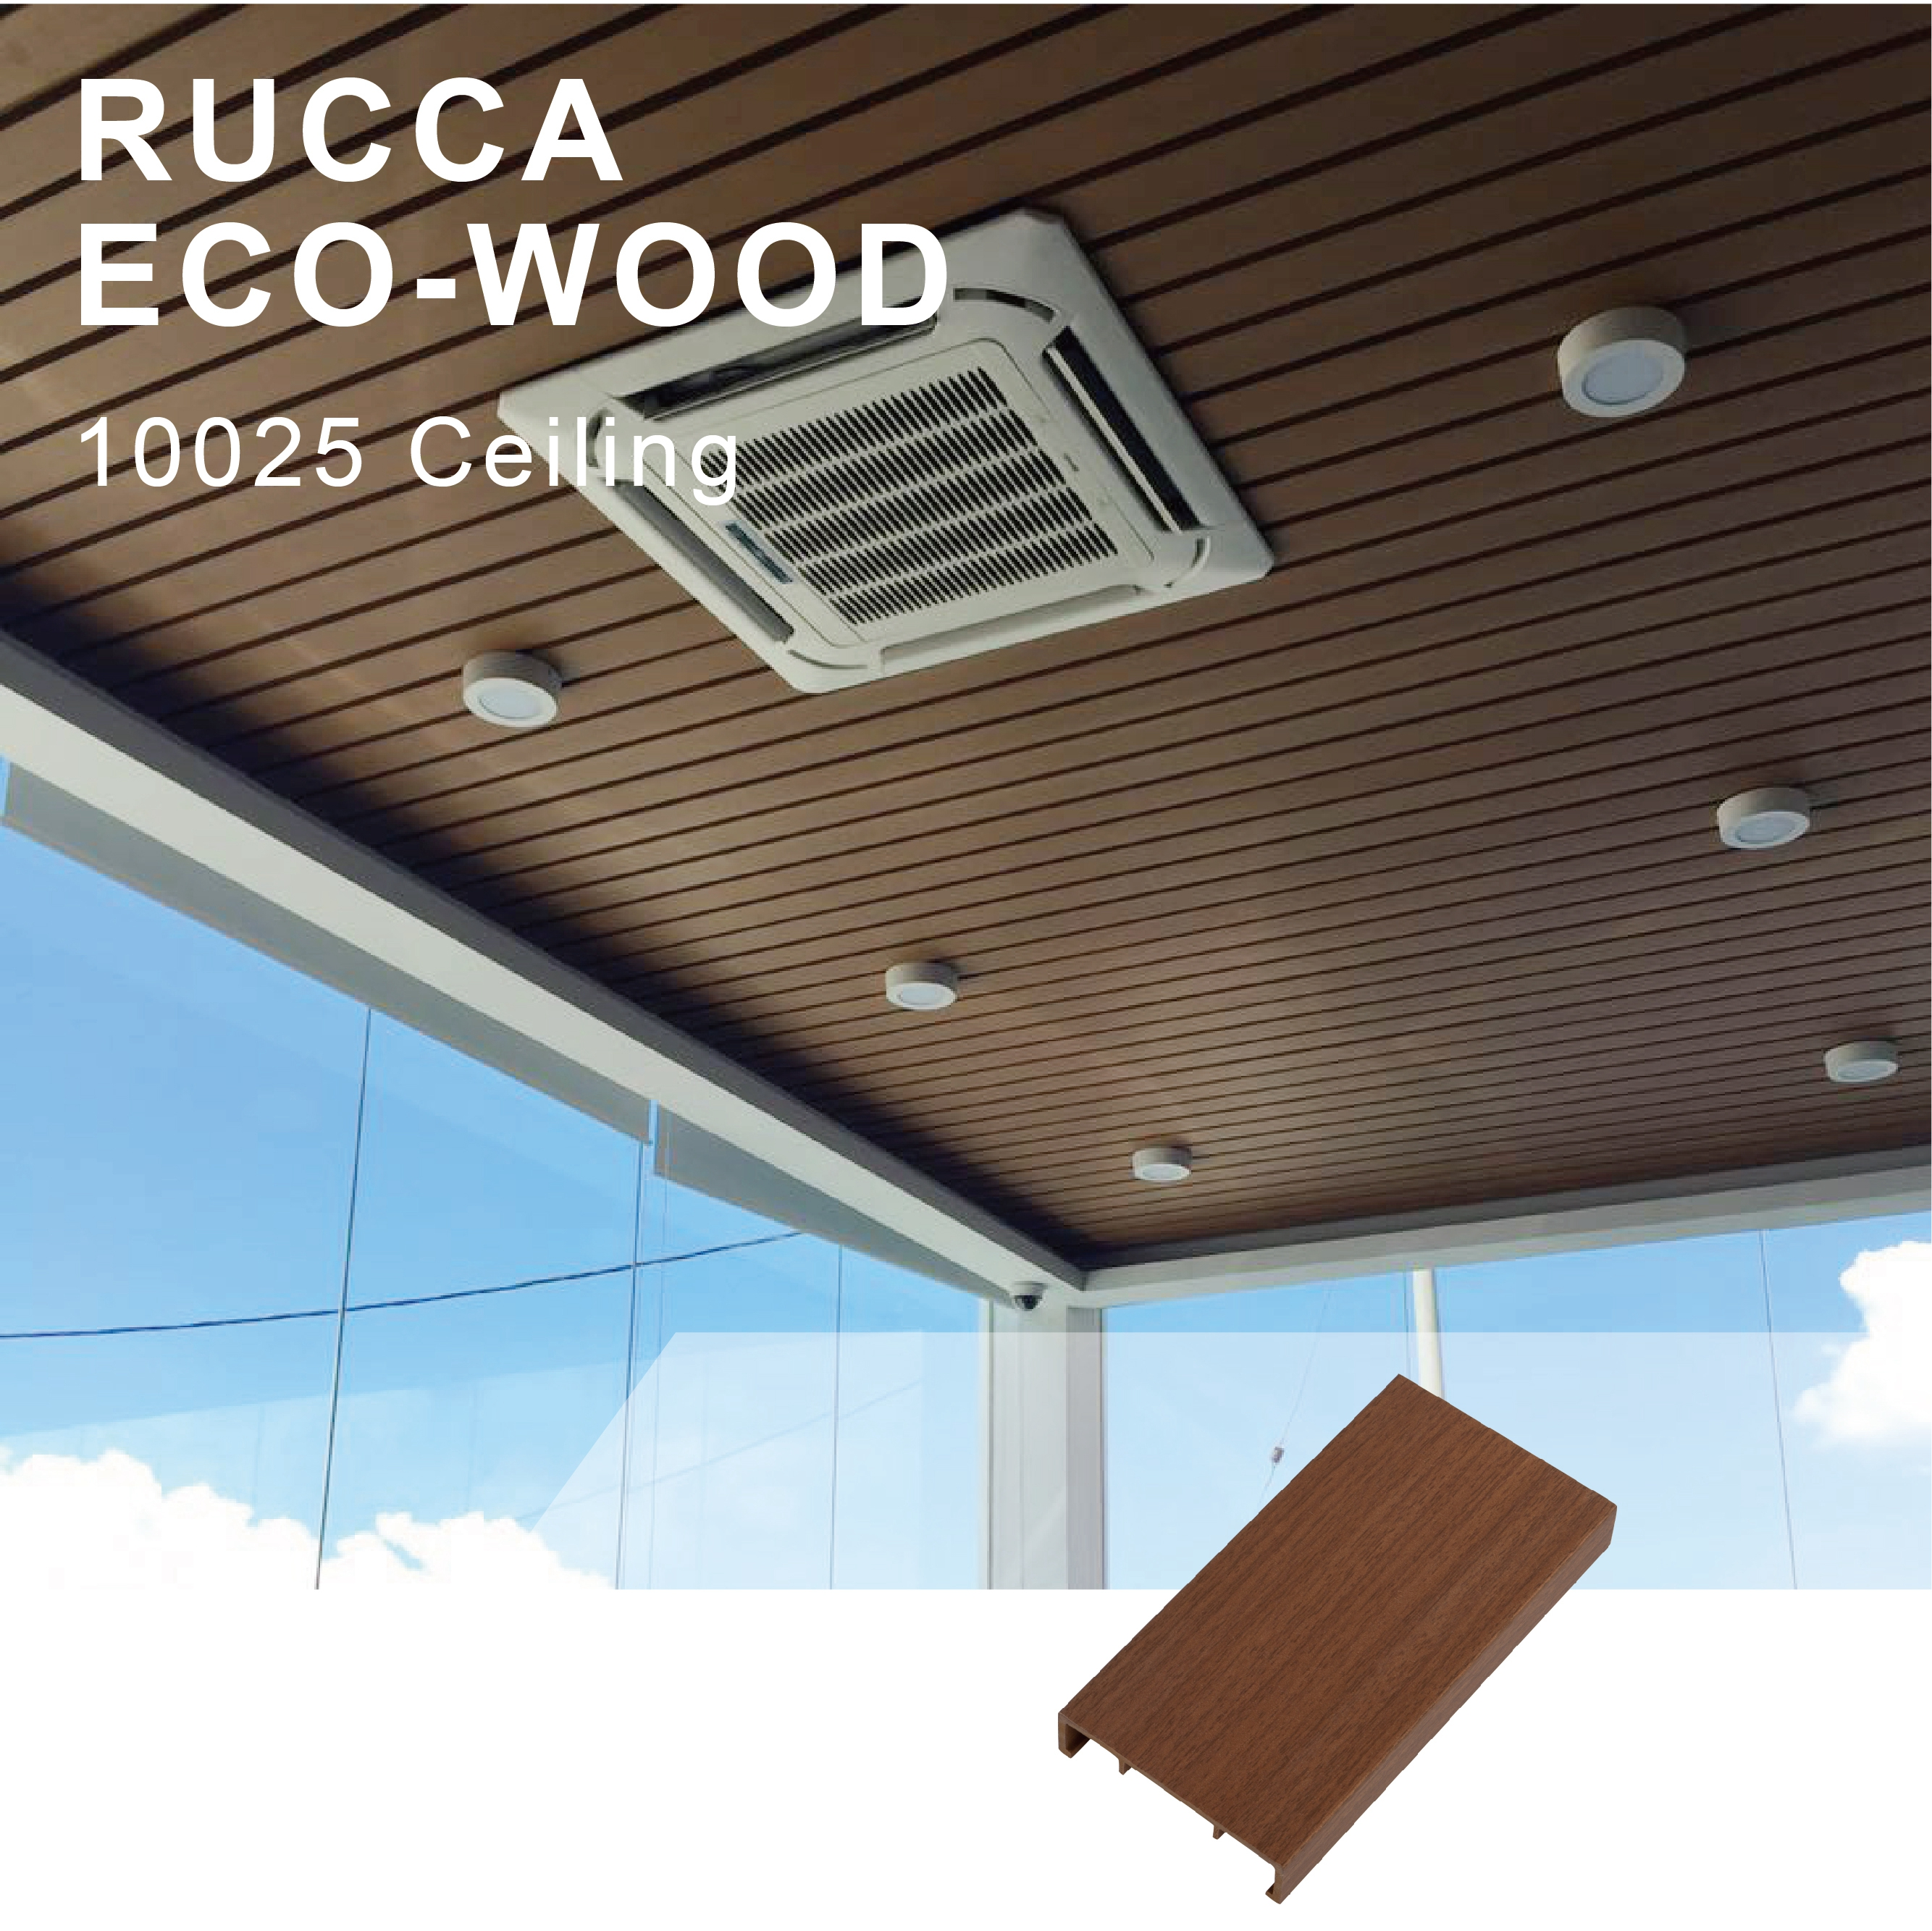 Image of: Wpc Fauxwood Indoor Suspender Ceiling Panel Designs 100 25mm Modern Kitchen Roof Panel China Supplier Buy Wpc Suspender Ceiling Modern Ceiling Design Pvc Ceiling Panel Product On Alibaba Com